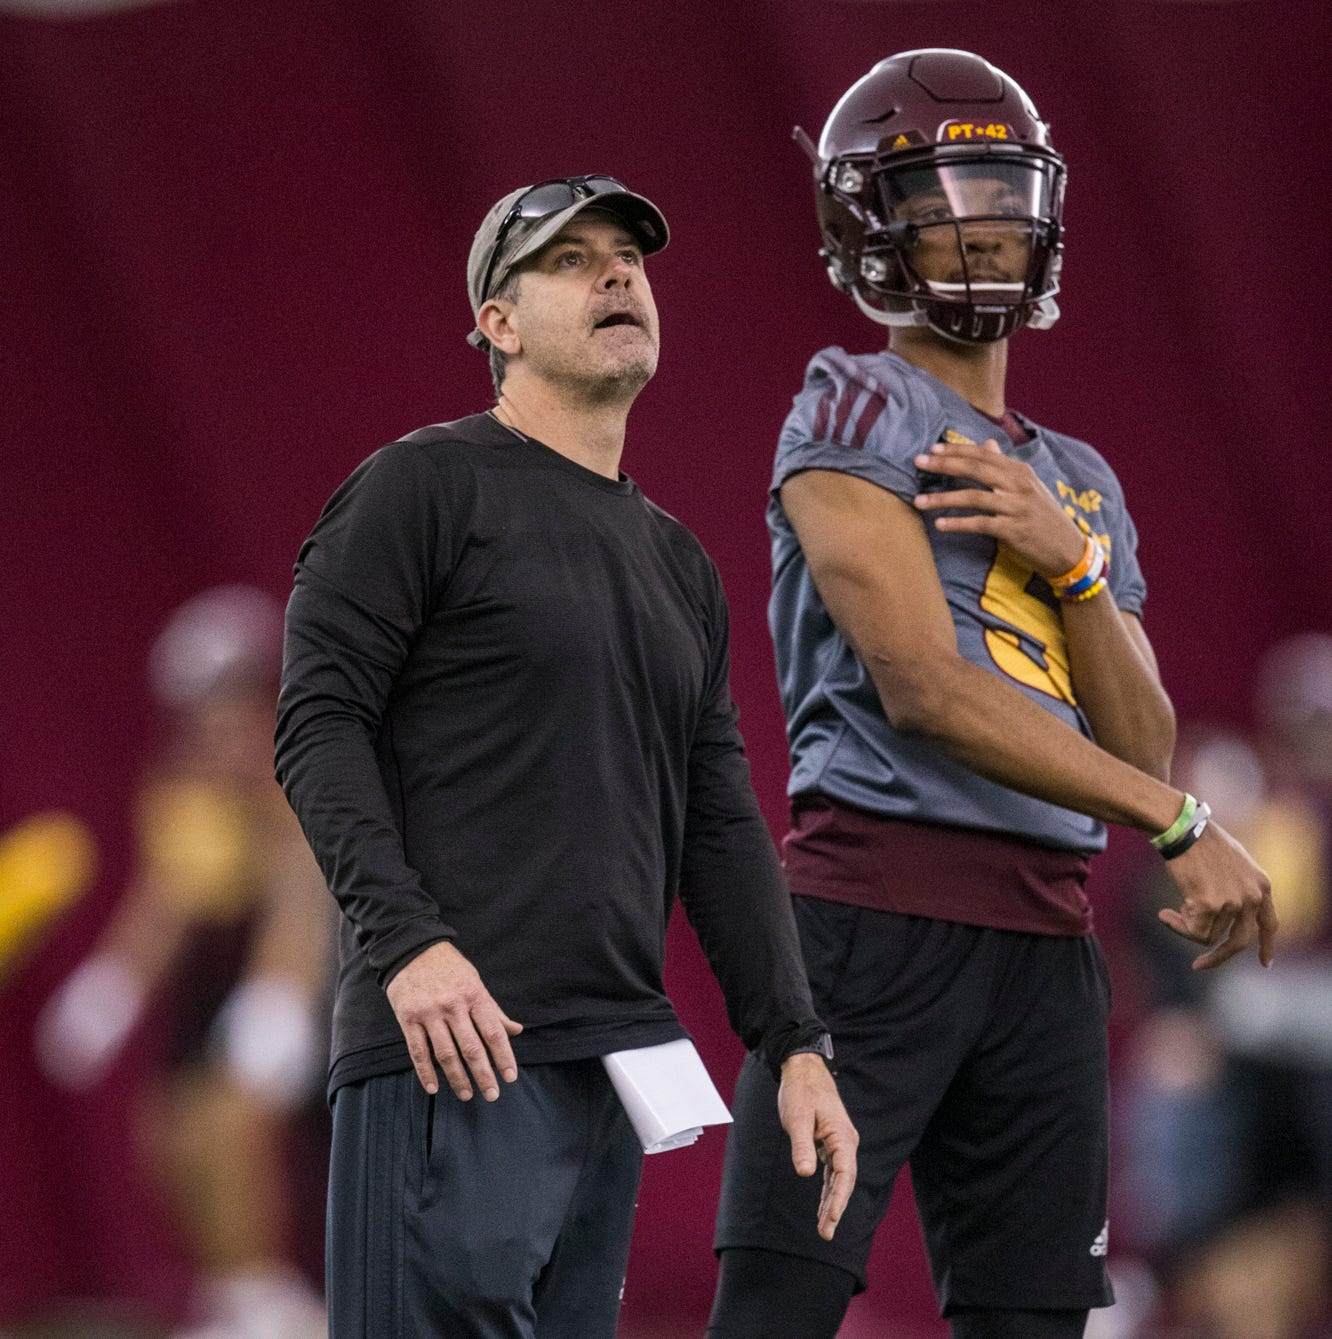 ASU quarterback Jayden Daniels on list of college football impact freshmen for 2019 season